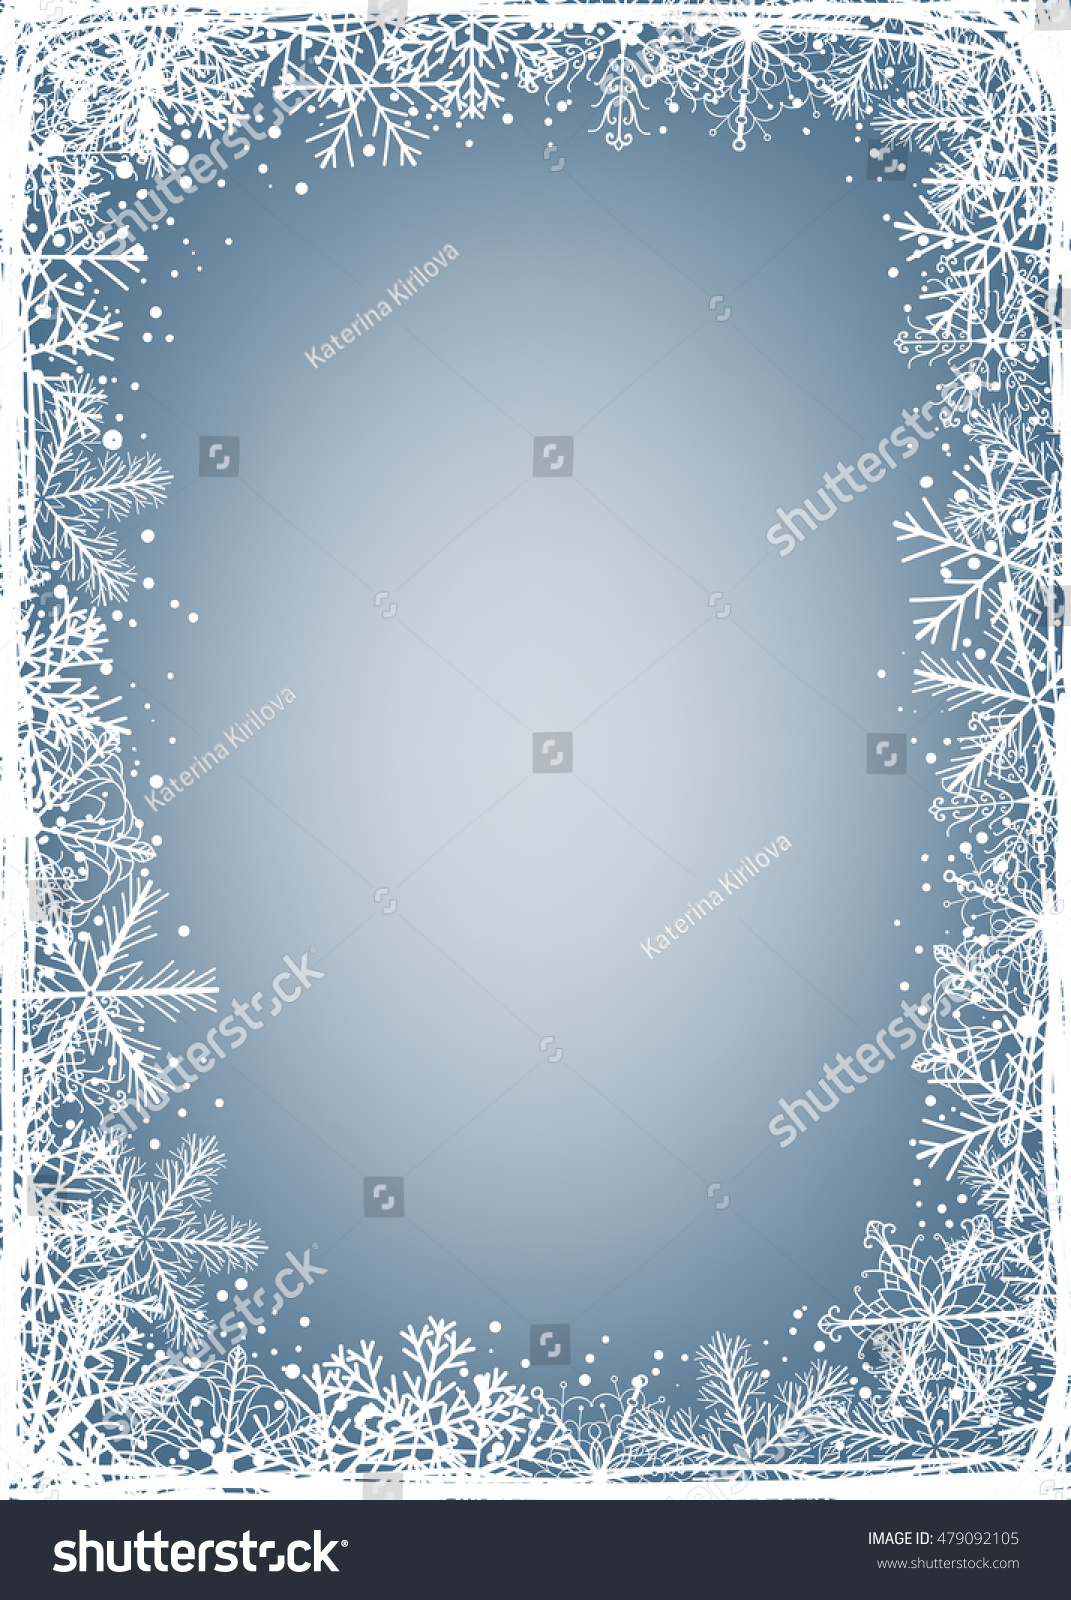 Winter Background Frame Made Fluffy Snowflakes Stock Vector (2018 ...